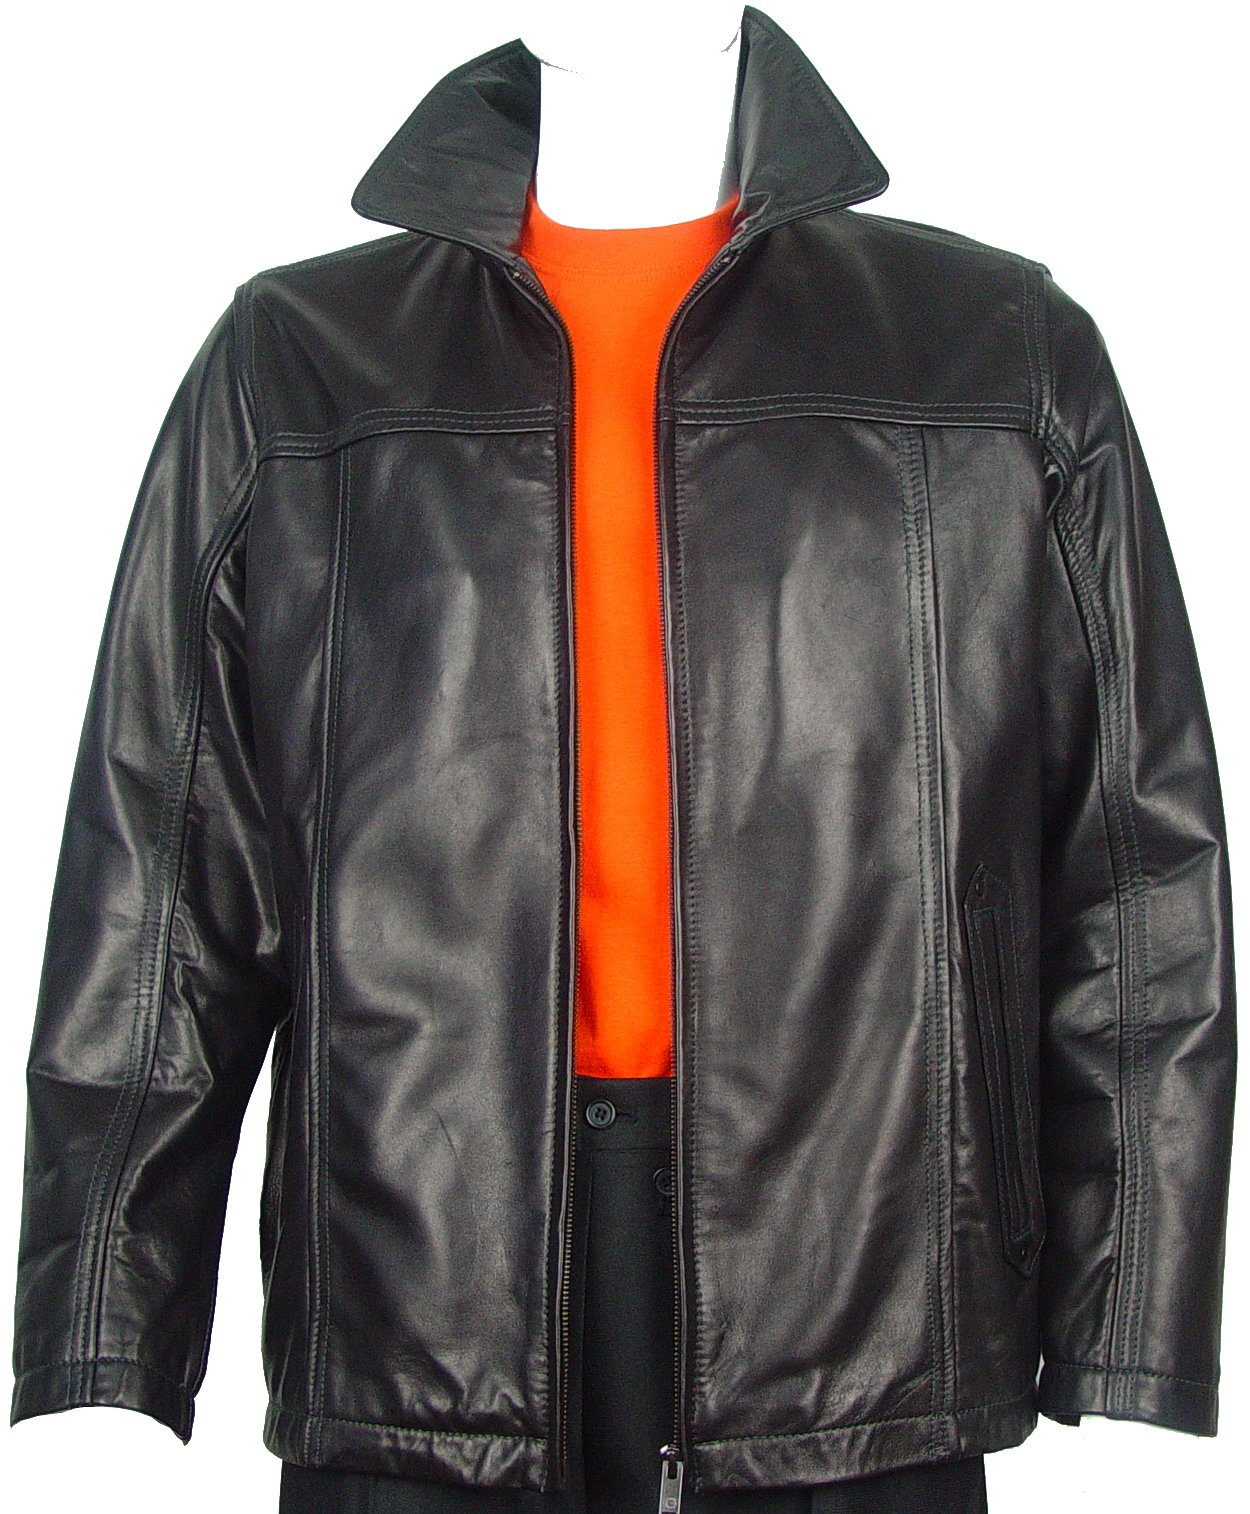 Johnny 1025 Big Man Business Clothing Popular Leather Jacket & Coats All Size by Johnnyblue